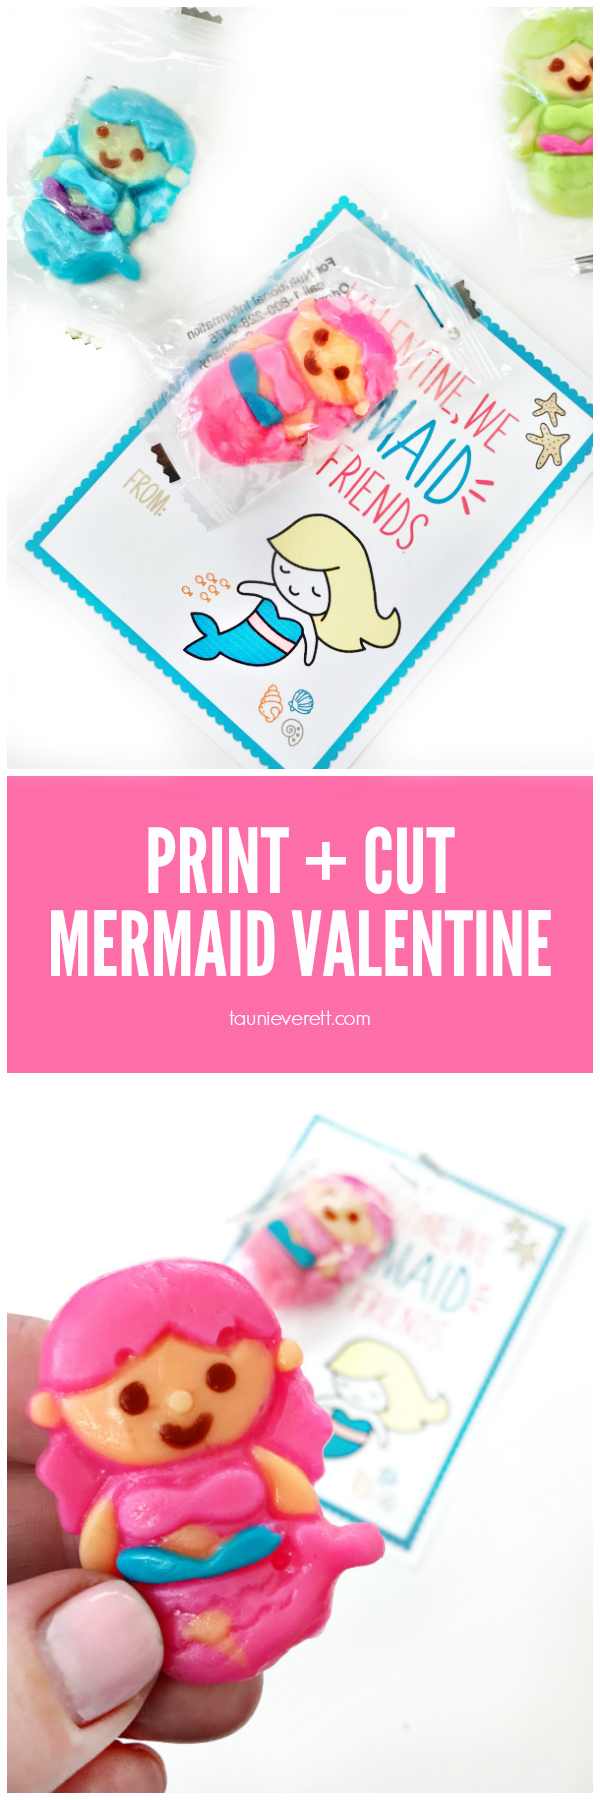 Print + Cut Mermaid Valentine Cards available for instant download #valentine #valentinecards #printable